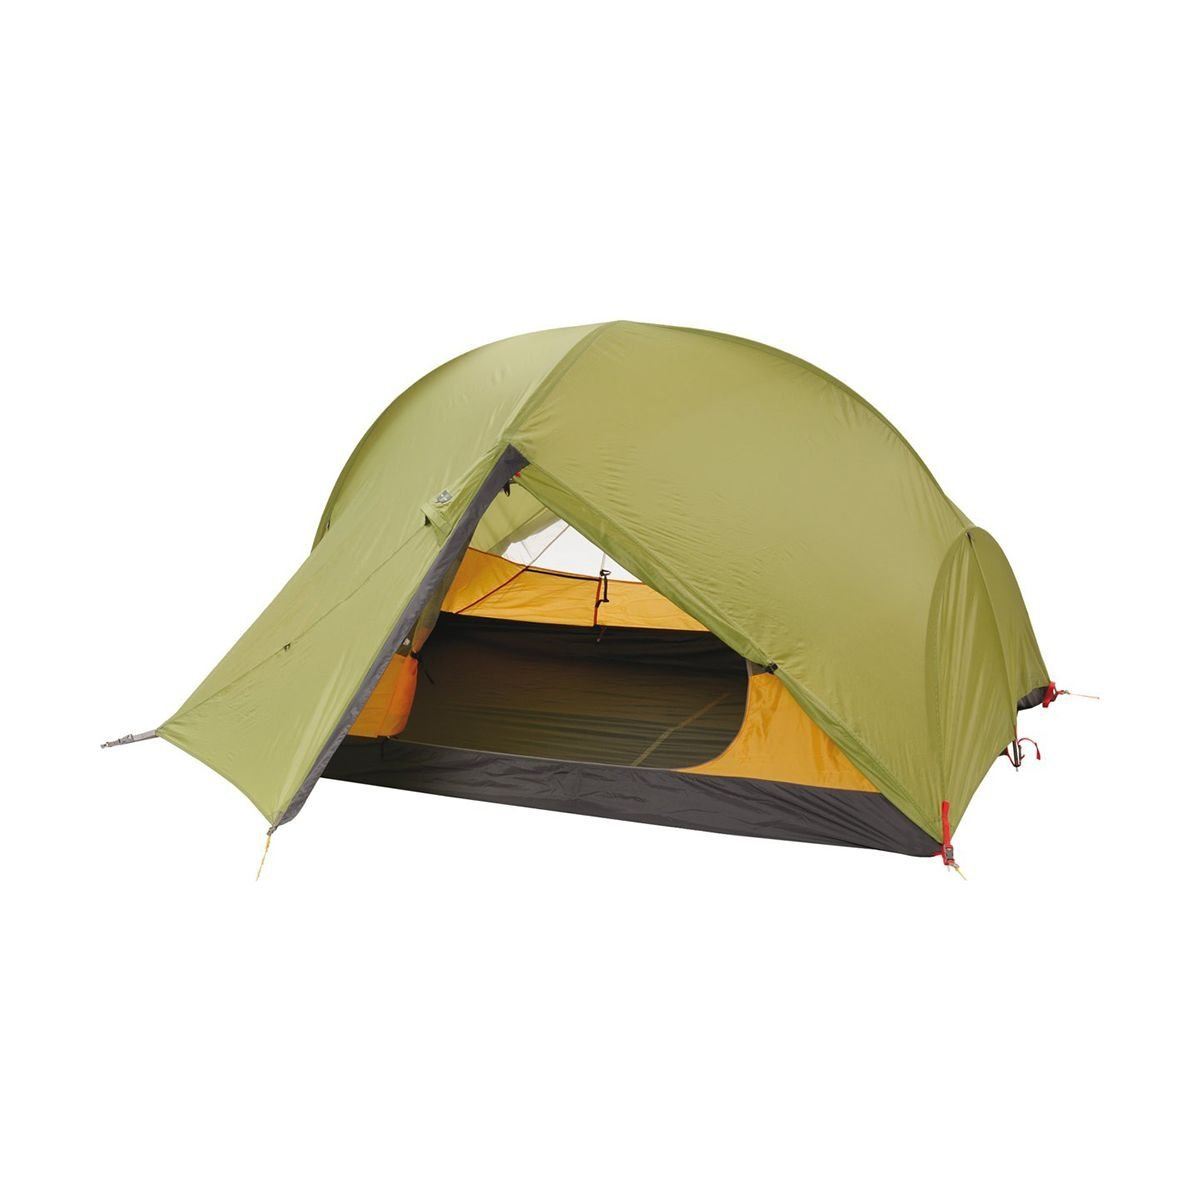 Exped Mira III Hyperlite 3P Backpacking Tent - Spring 2016